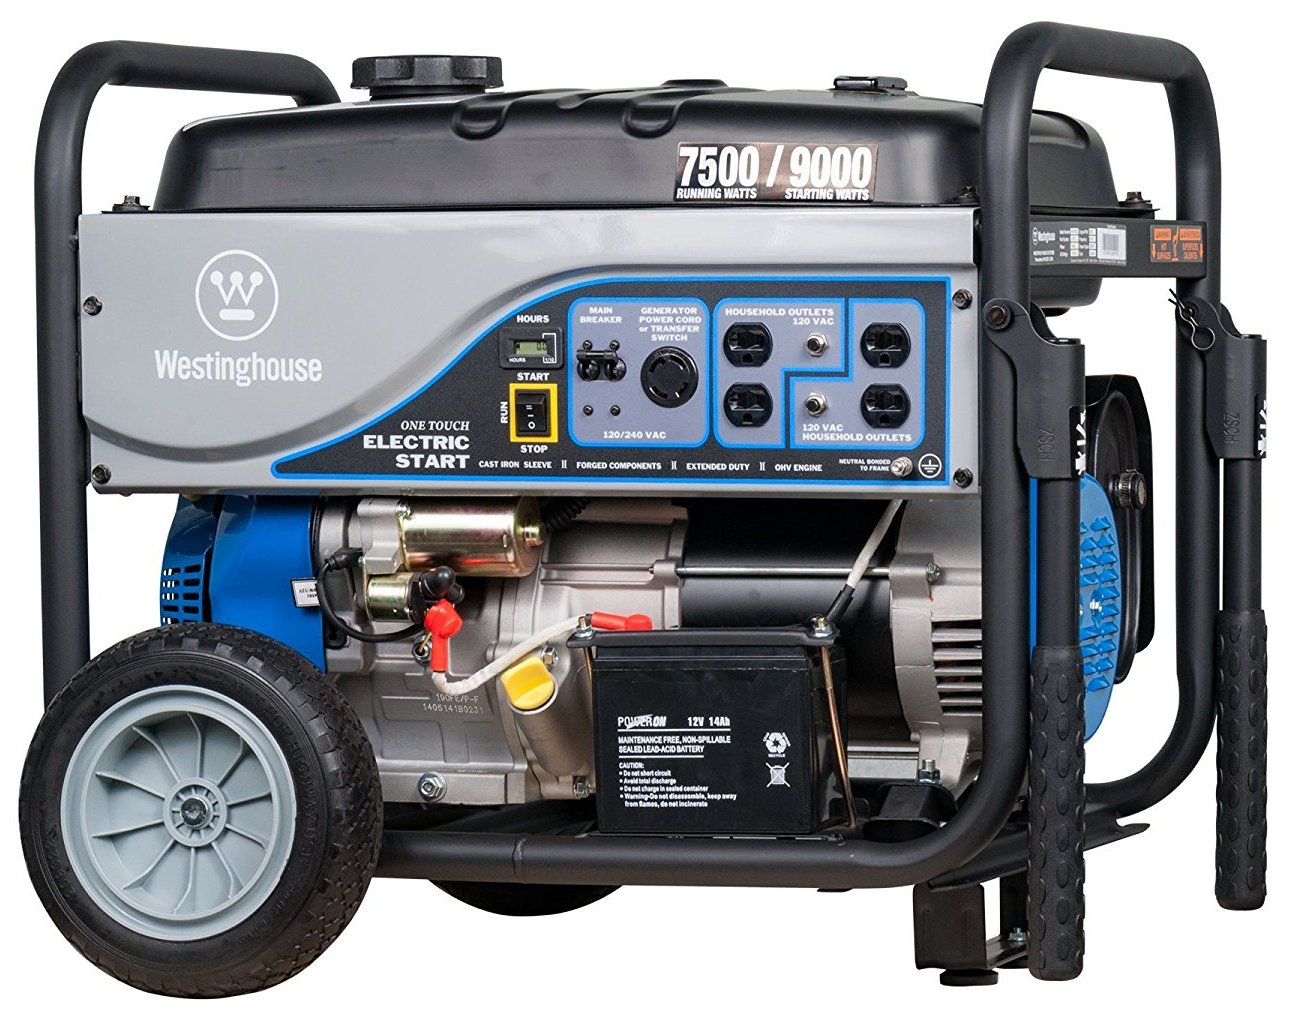 Best Rated Home Generator Buying Guide 2019 - The Por Home on